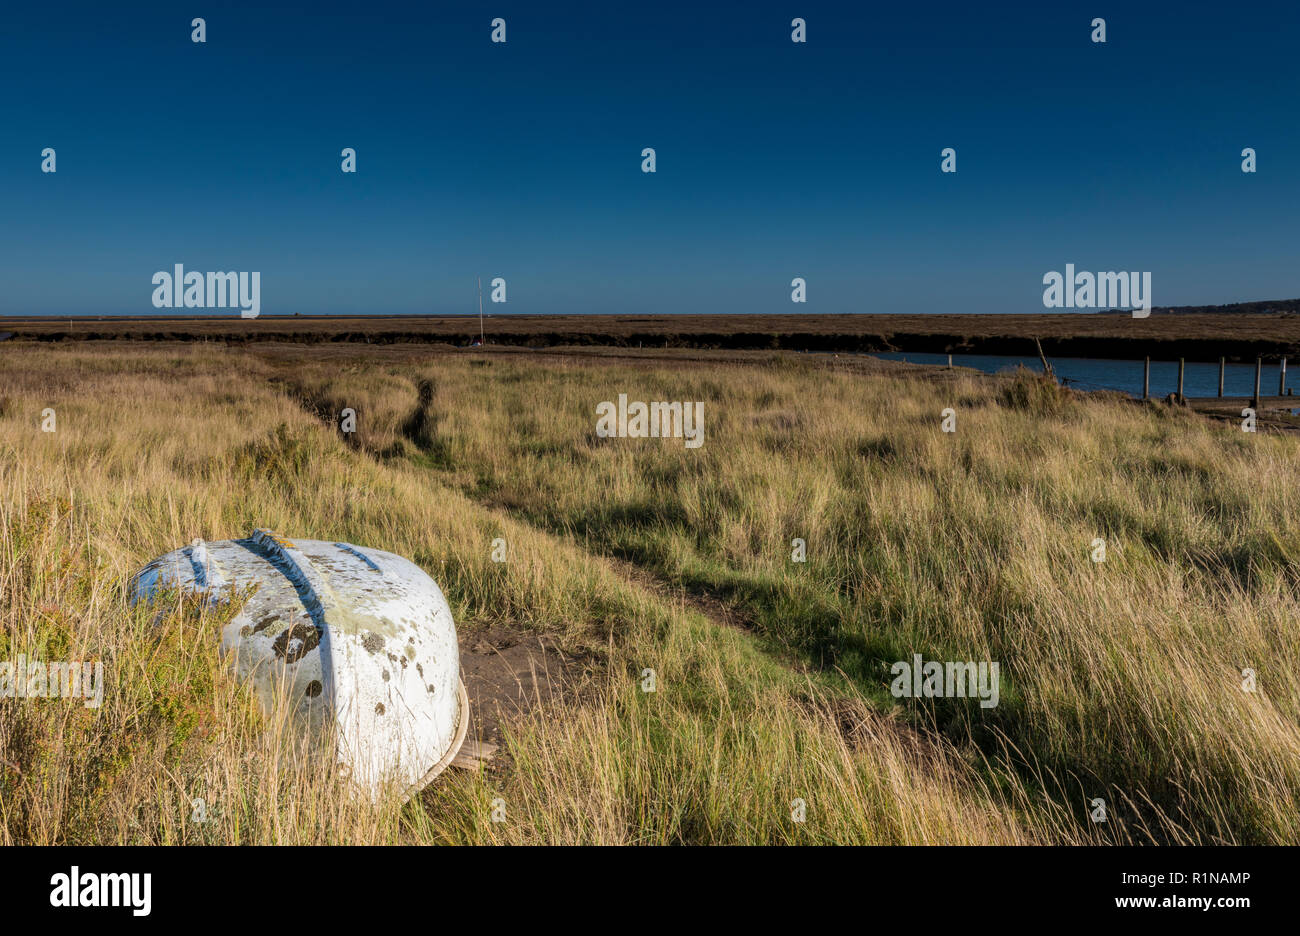 an upturned rowing boat and pathway or track across the mud flats and maram grass marshes at morston harbour or creek in Norfolk on the coast. - Stock Image